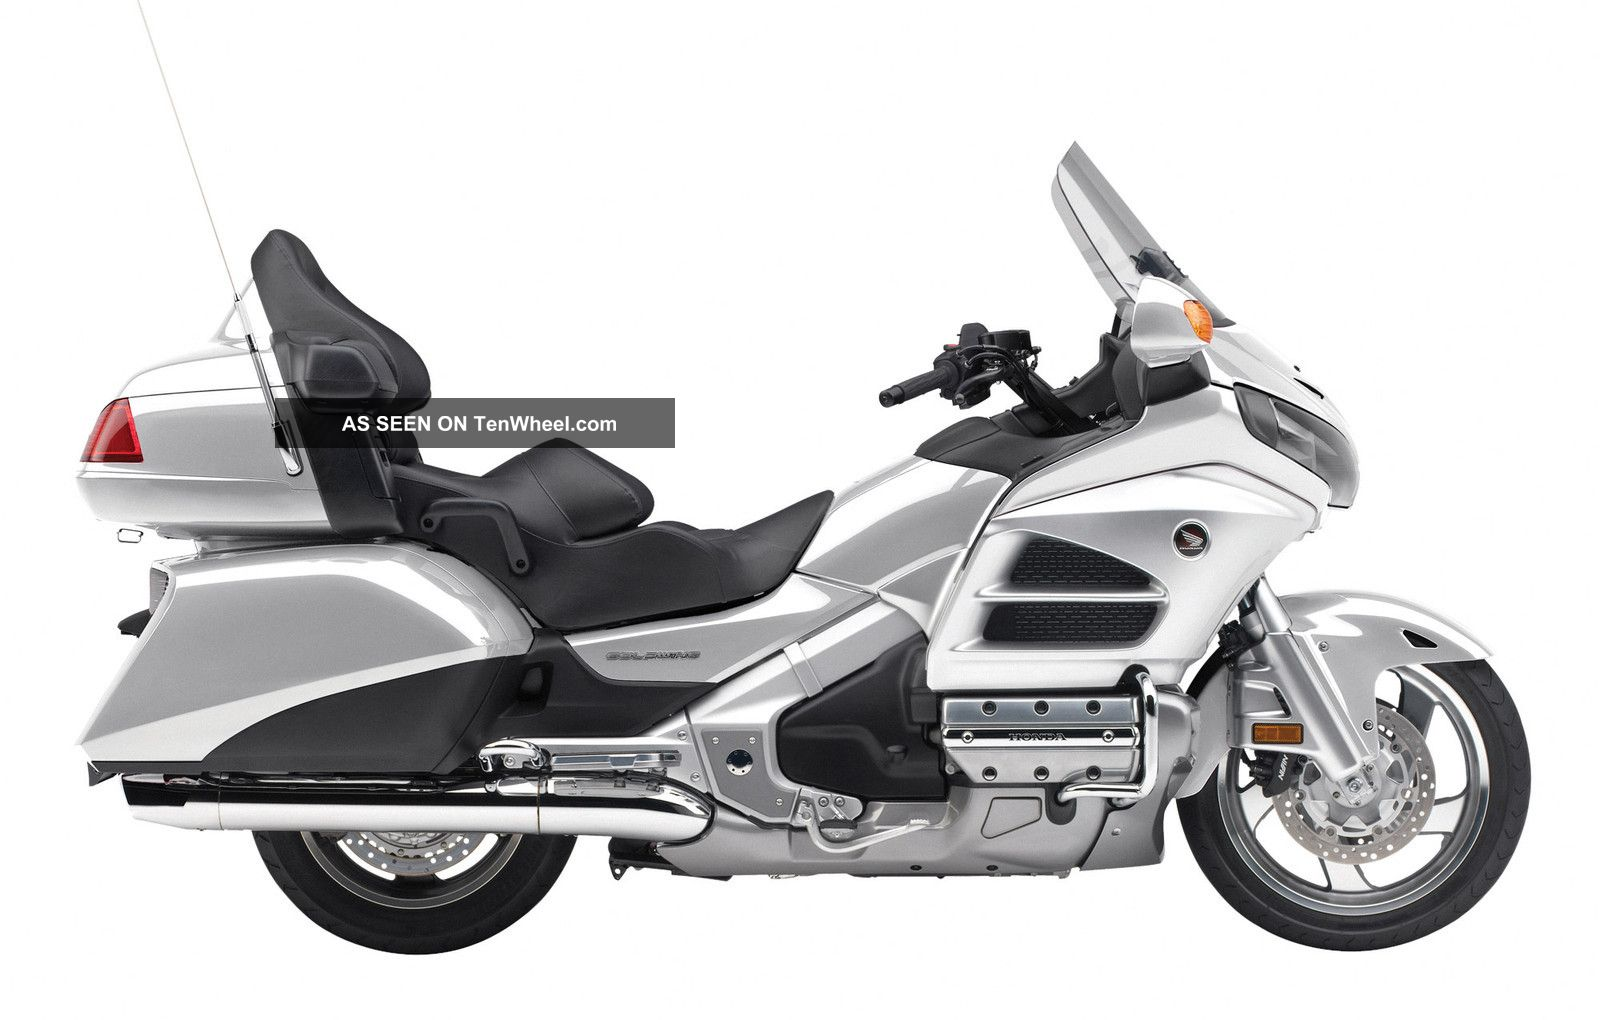 2013 Goldwing Wiring Diagram Free Download Gl1800 Cruise Schematic Honda Gold Wing